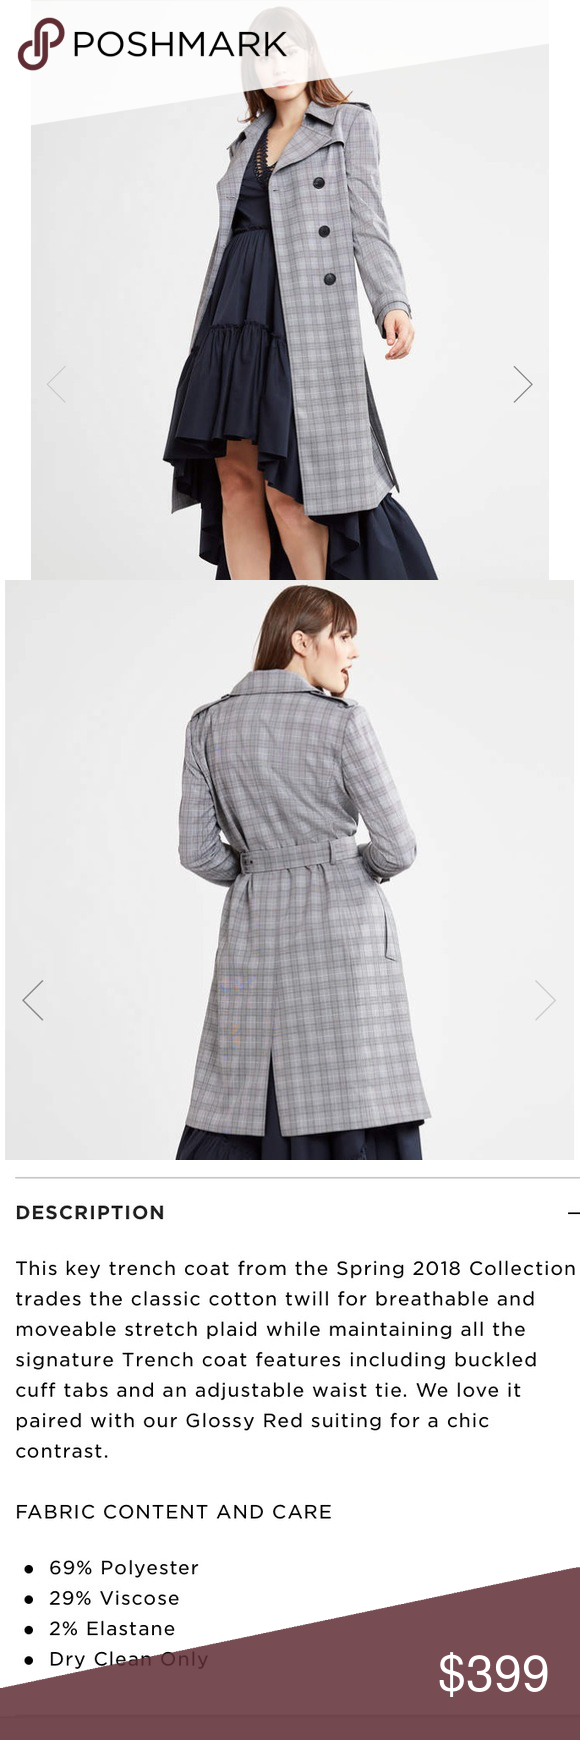 b0184dce63a98 Elie Tahari WATSON COAT Wore it once almost brand new No flows Elie Tahari  Jackets   Coats Trench Coats